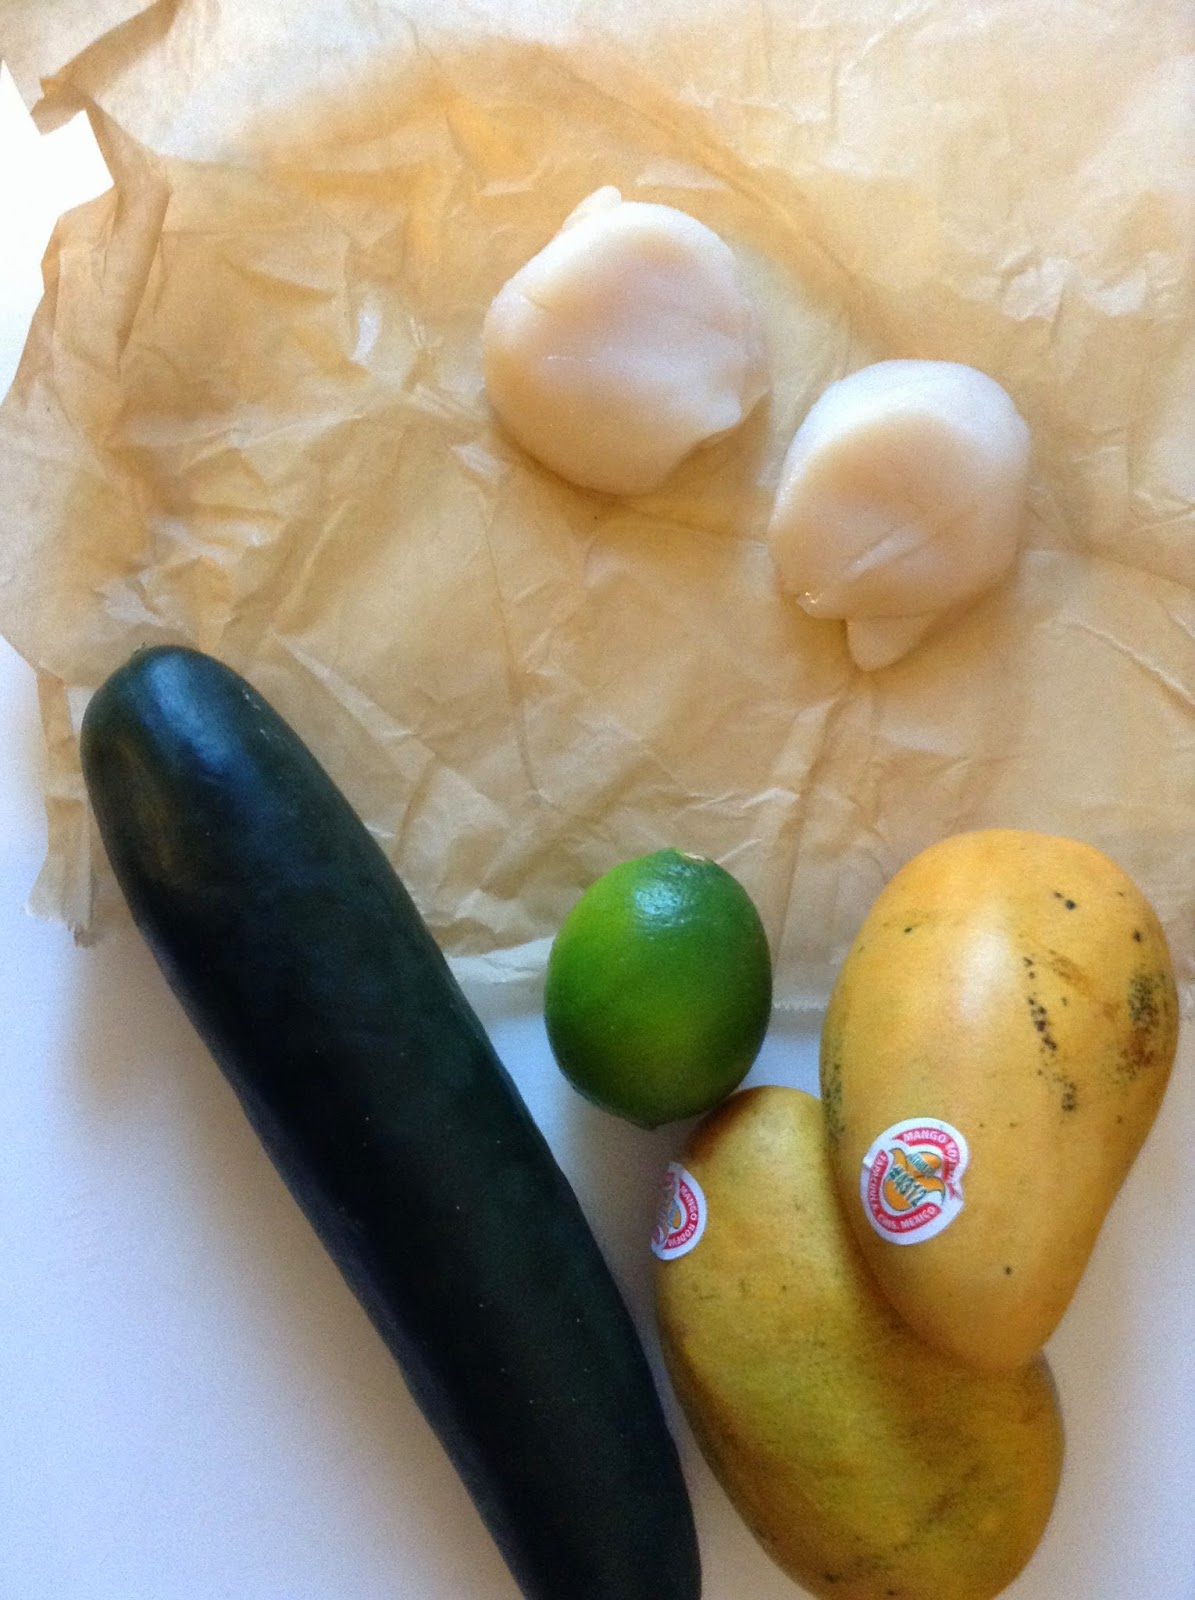 Raw scallops on wax paper with a whole cucumber, two mangos and a lime